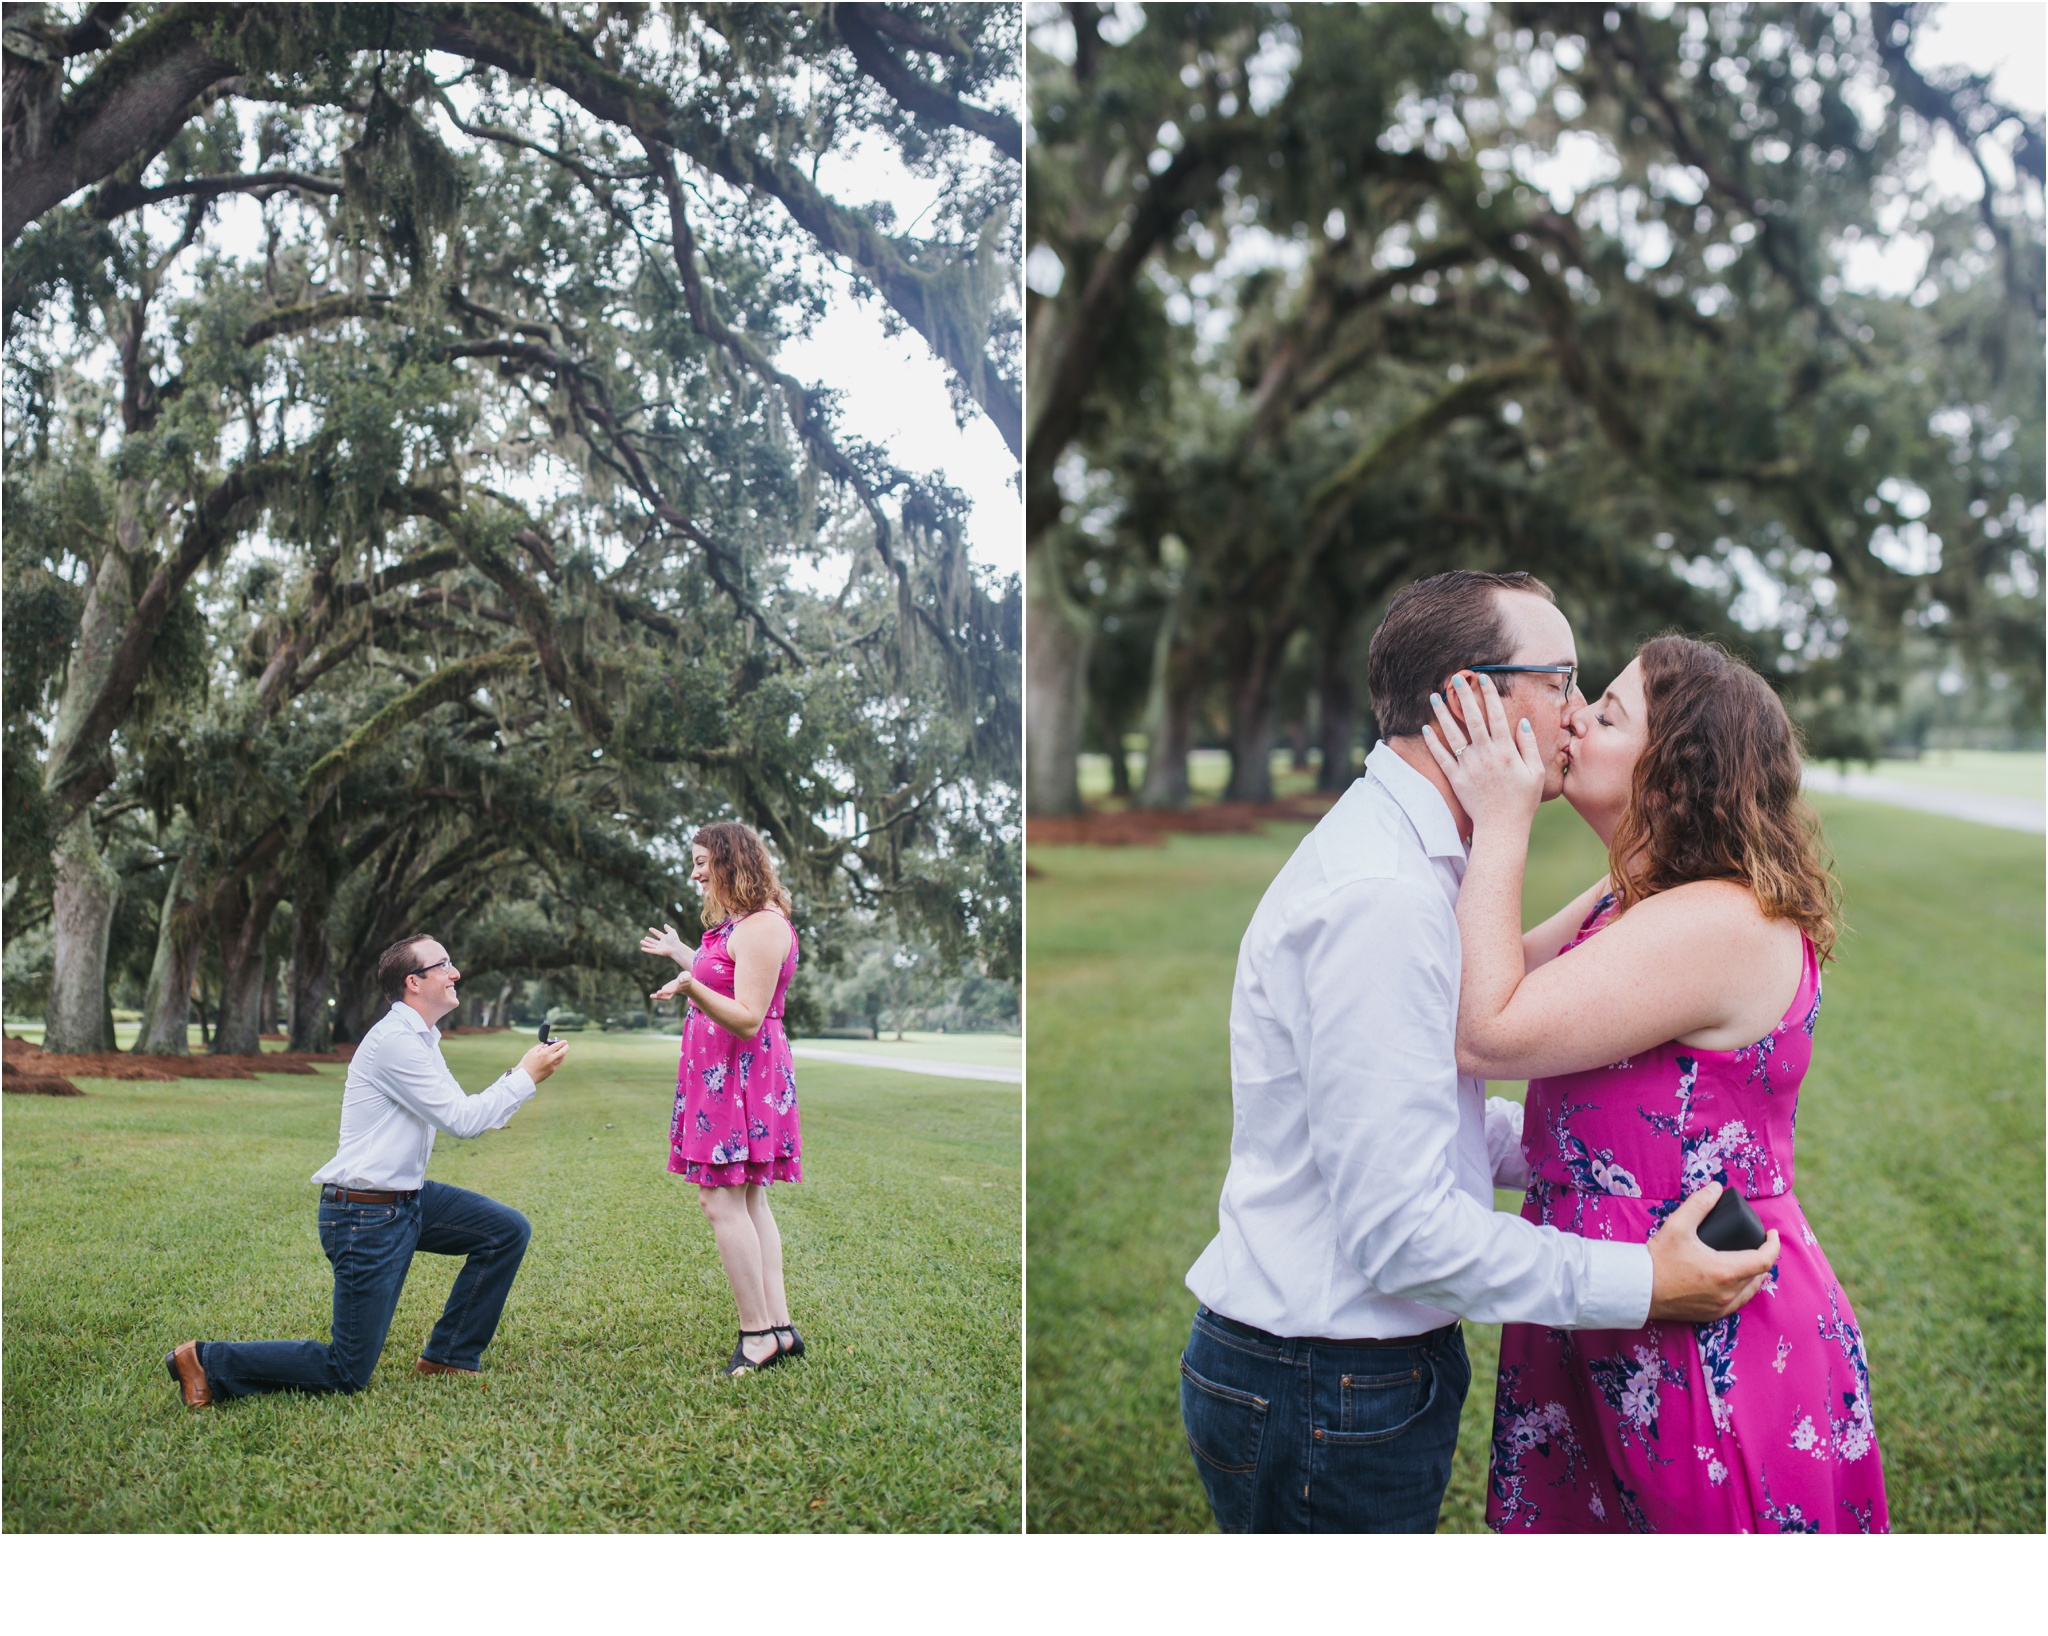 Rainey_Gregg_Photography_St._Simons_Island_Georgia_California_Wedding_Portrait_Photography_1462.jpg